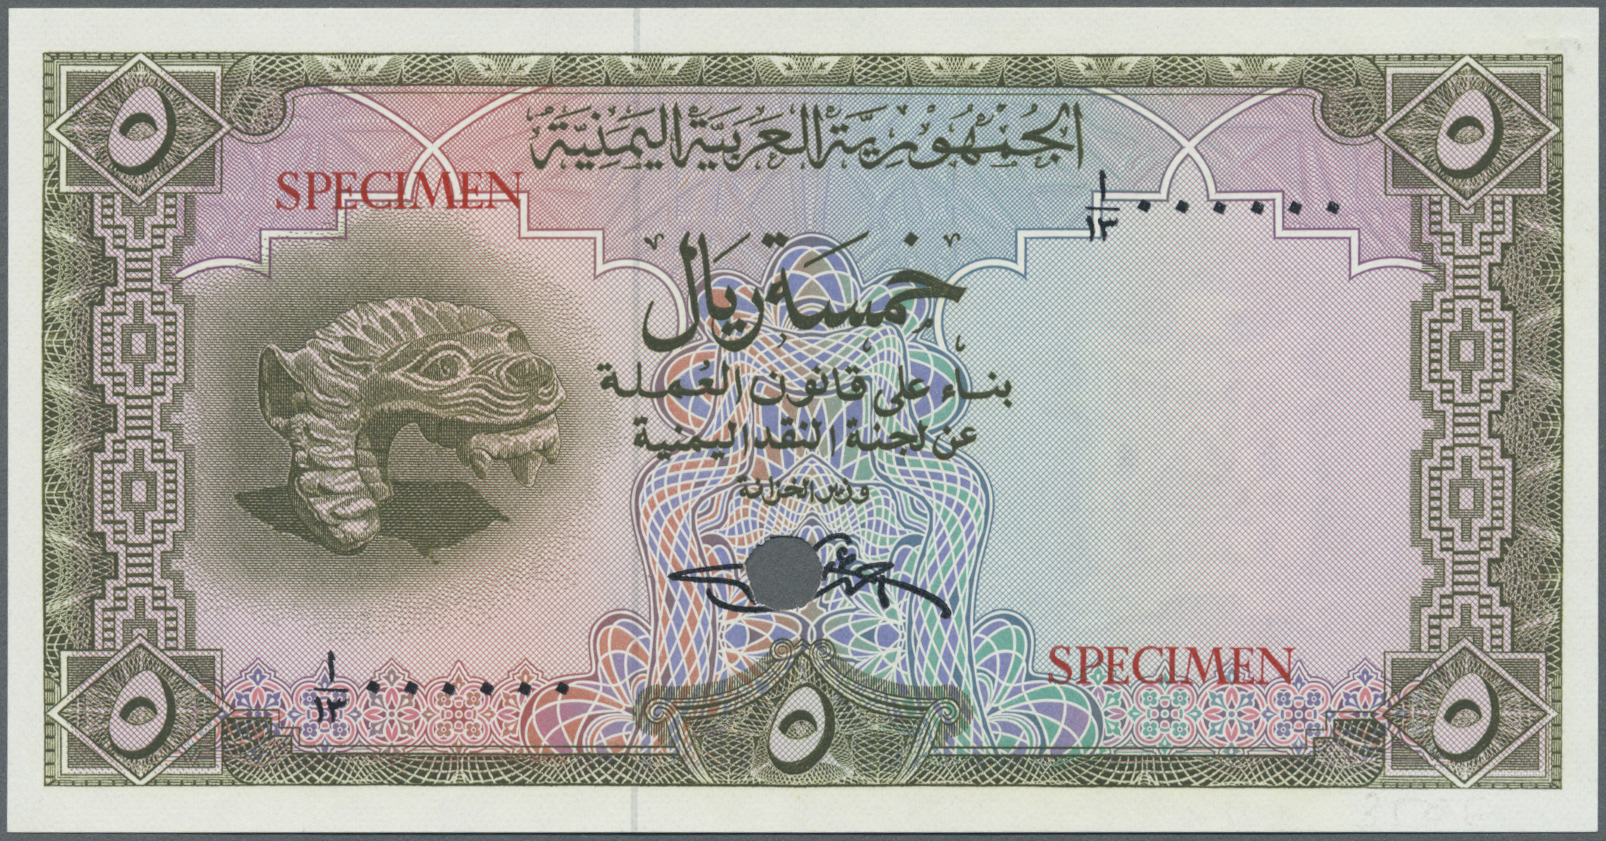 Lot 2257 - Yemen / Jemen | Banknoten  -  Auktionshaus Christoph Gärtner GmbH & Co. KG Banknotes & Coins Auction #39 Day 2